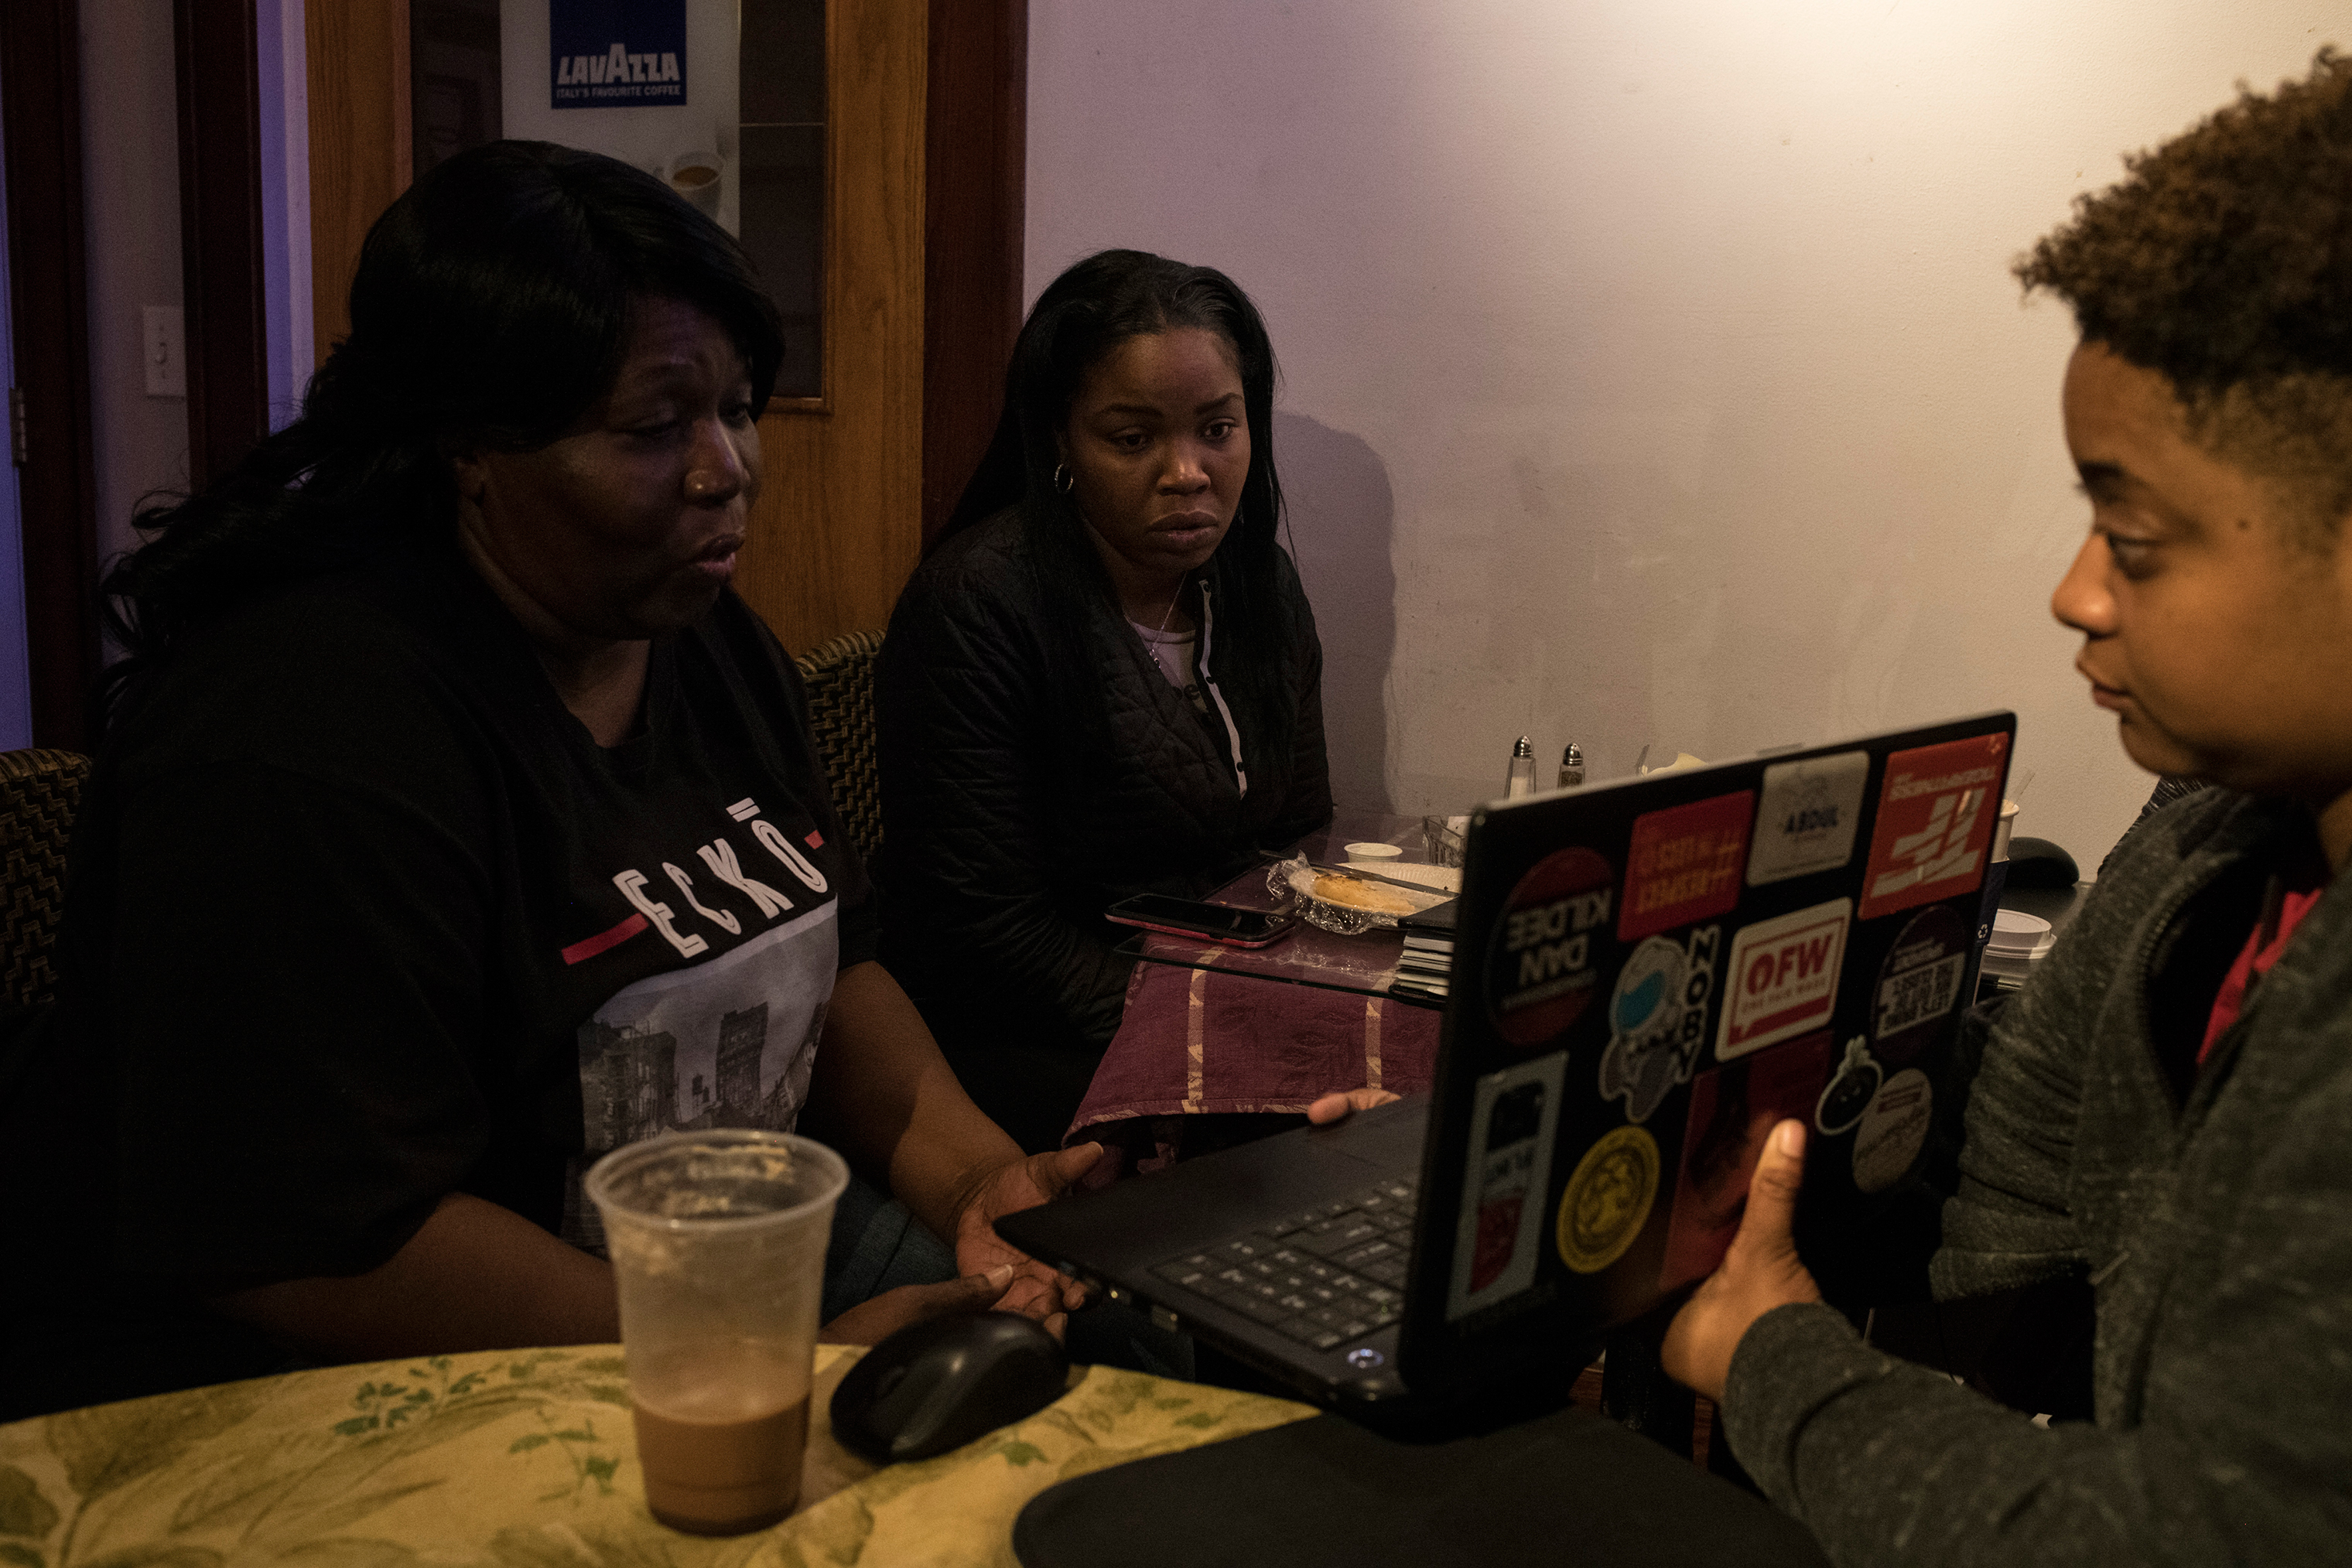 Hawk joins a conference call with a non-profit alongside fellow Flint residents to discuss the needs of the city.